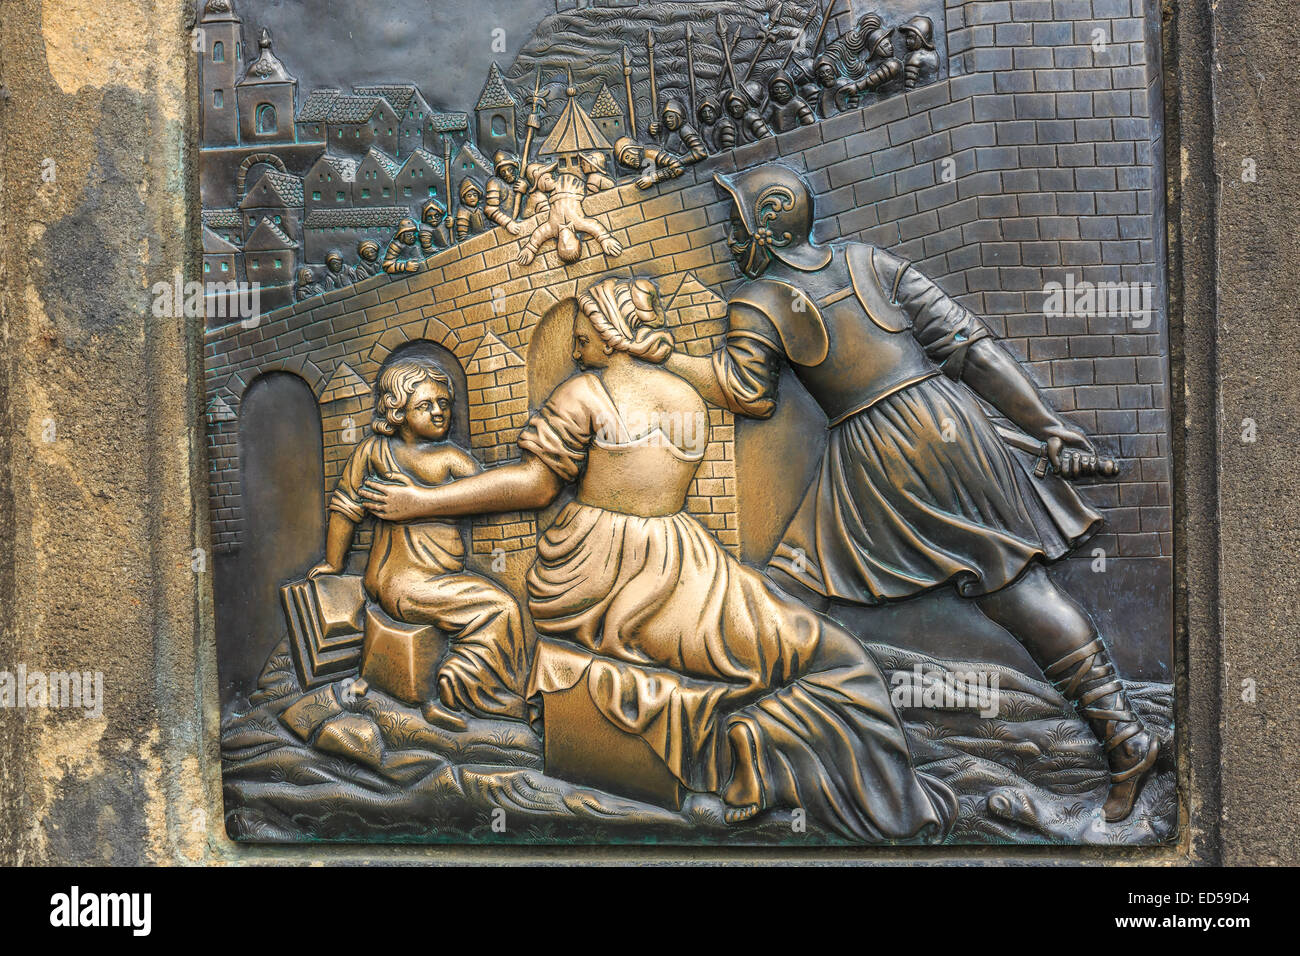 Relief below the statue of St. John of Nepomuk on Charles Bridge in Prague, Czech Republic - Stock Image